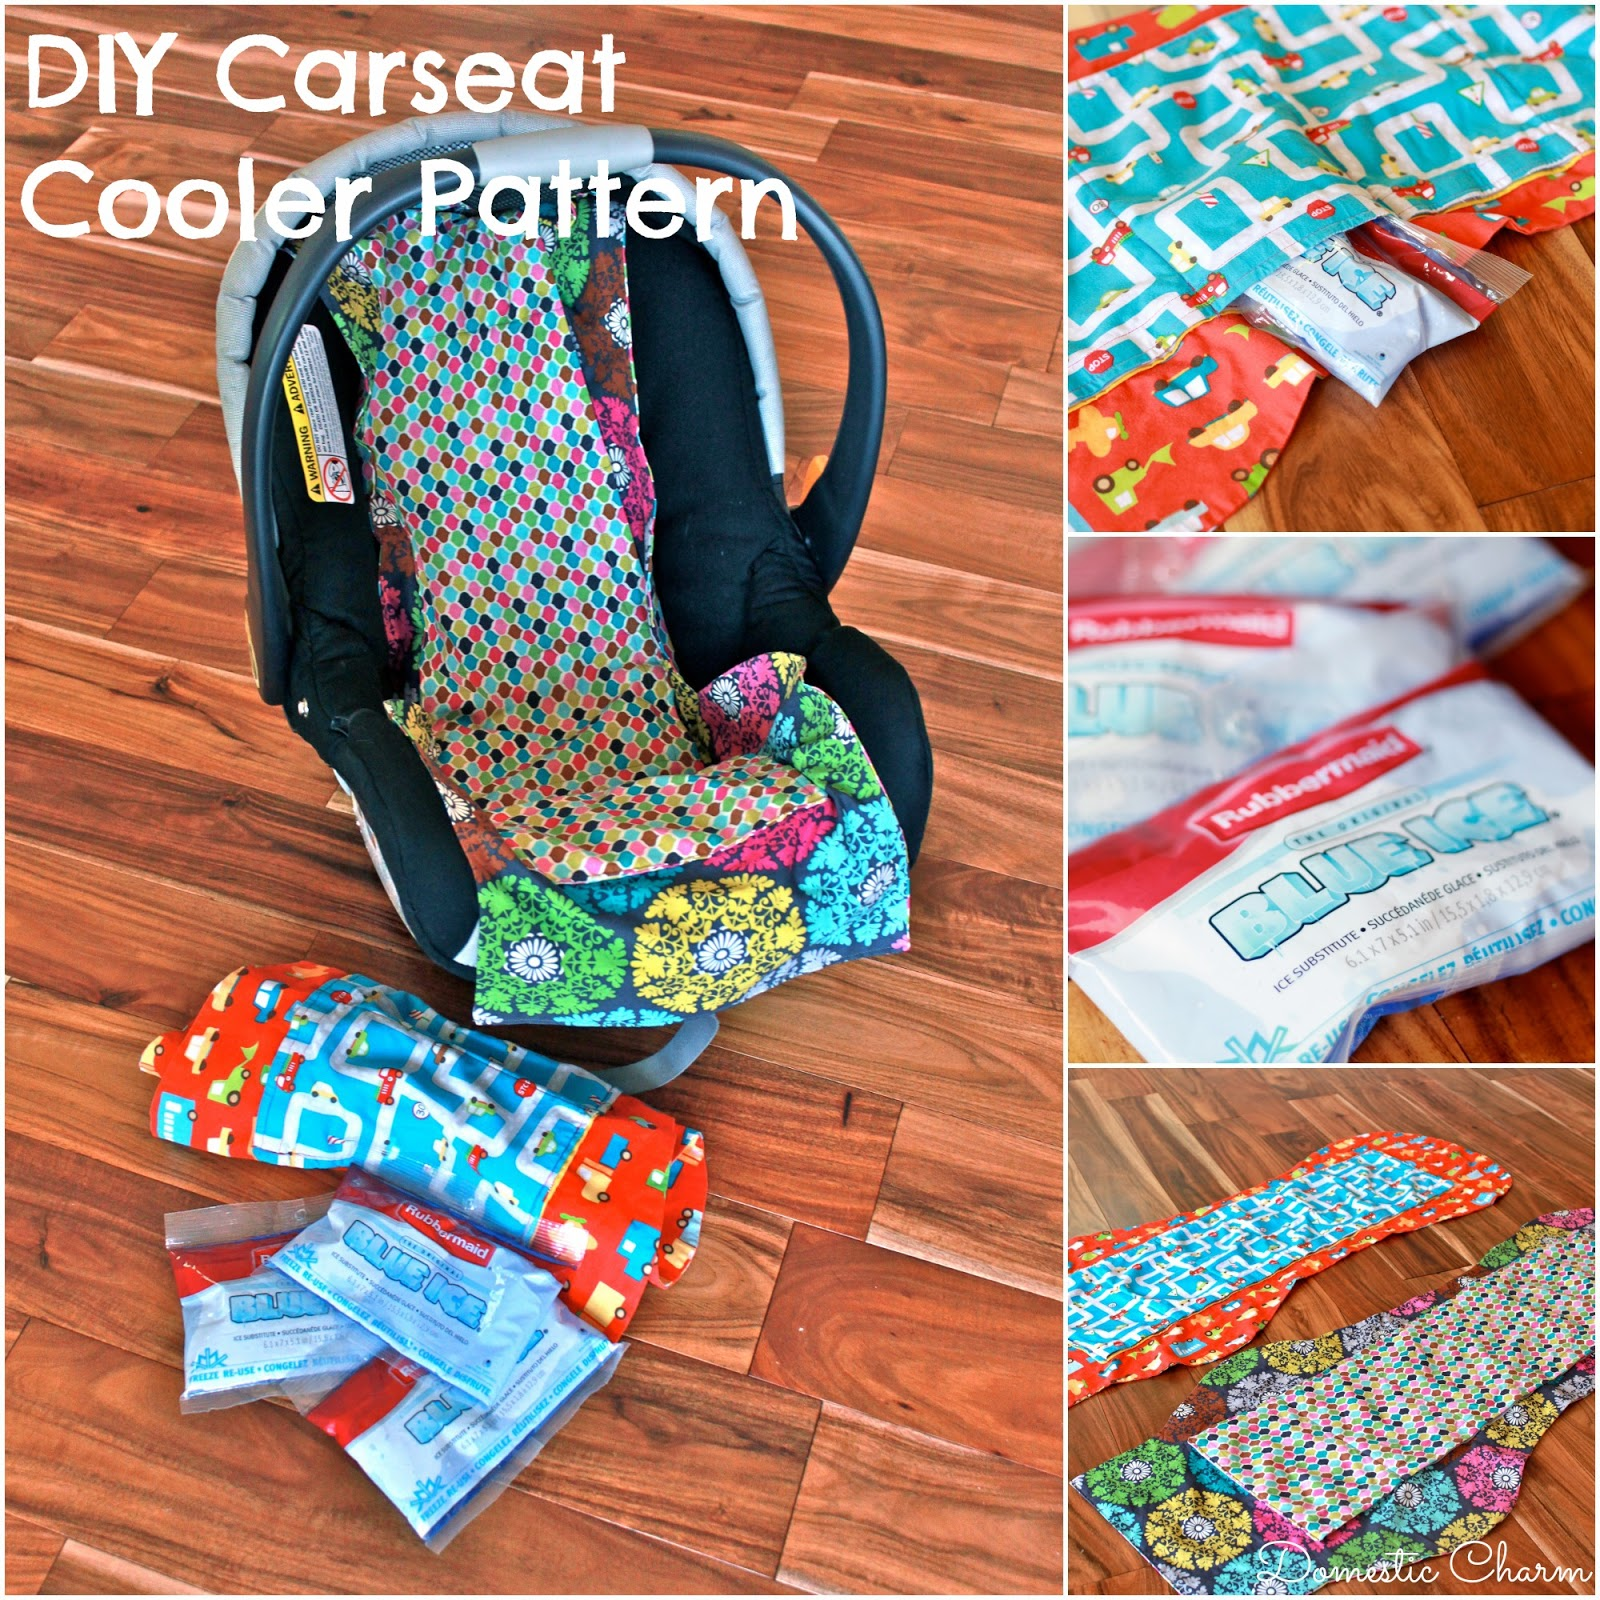 Domestic Charm Diy Car Seat Cooler With Free Pattern